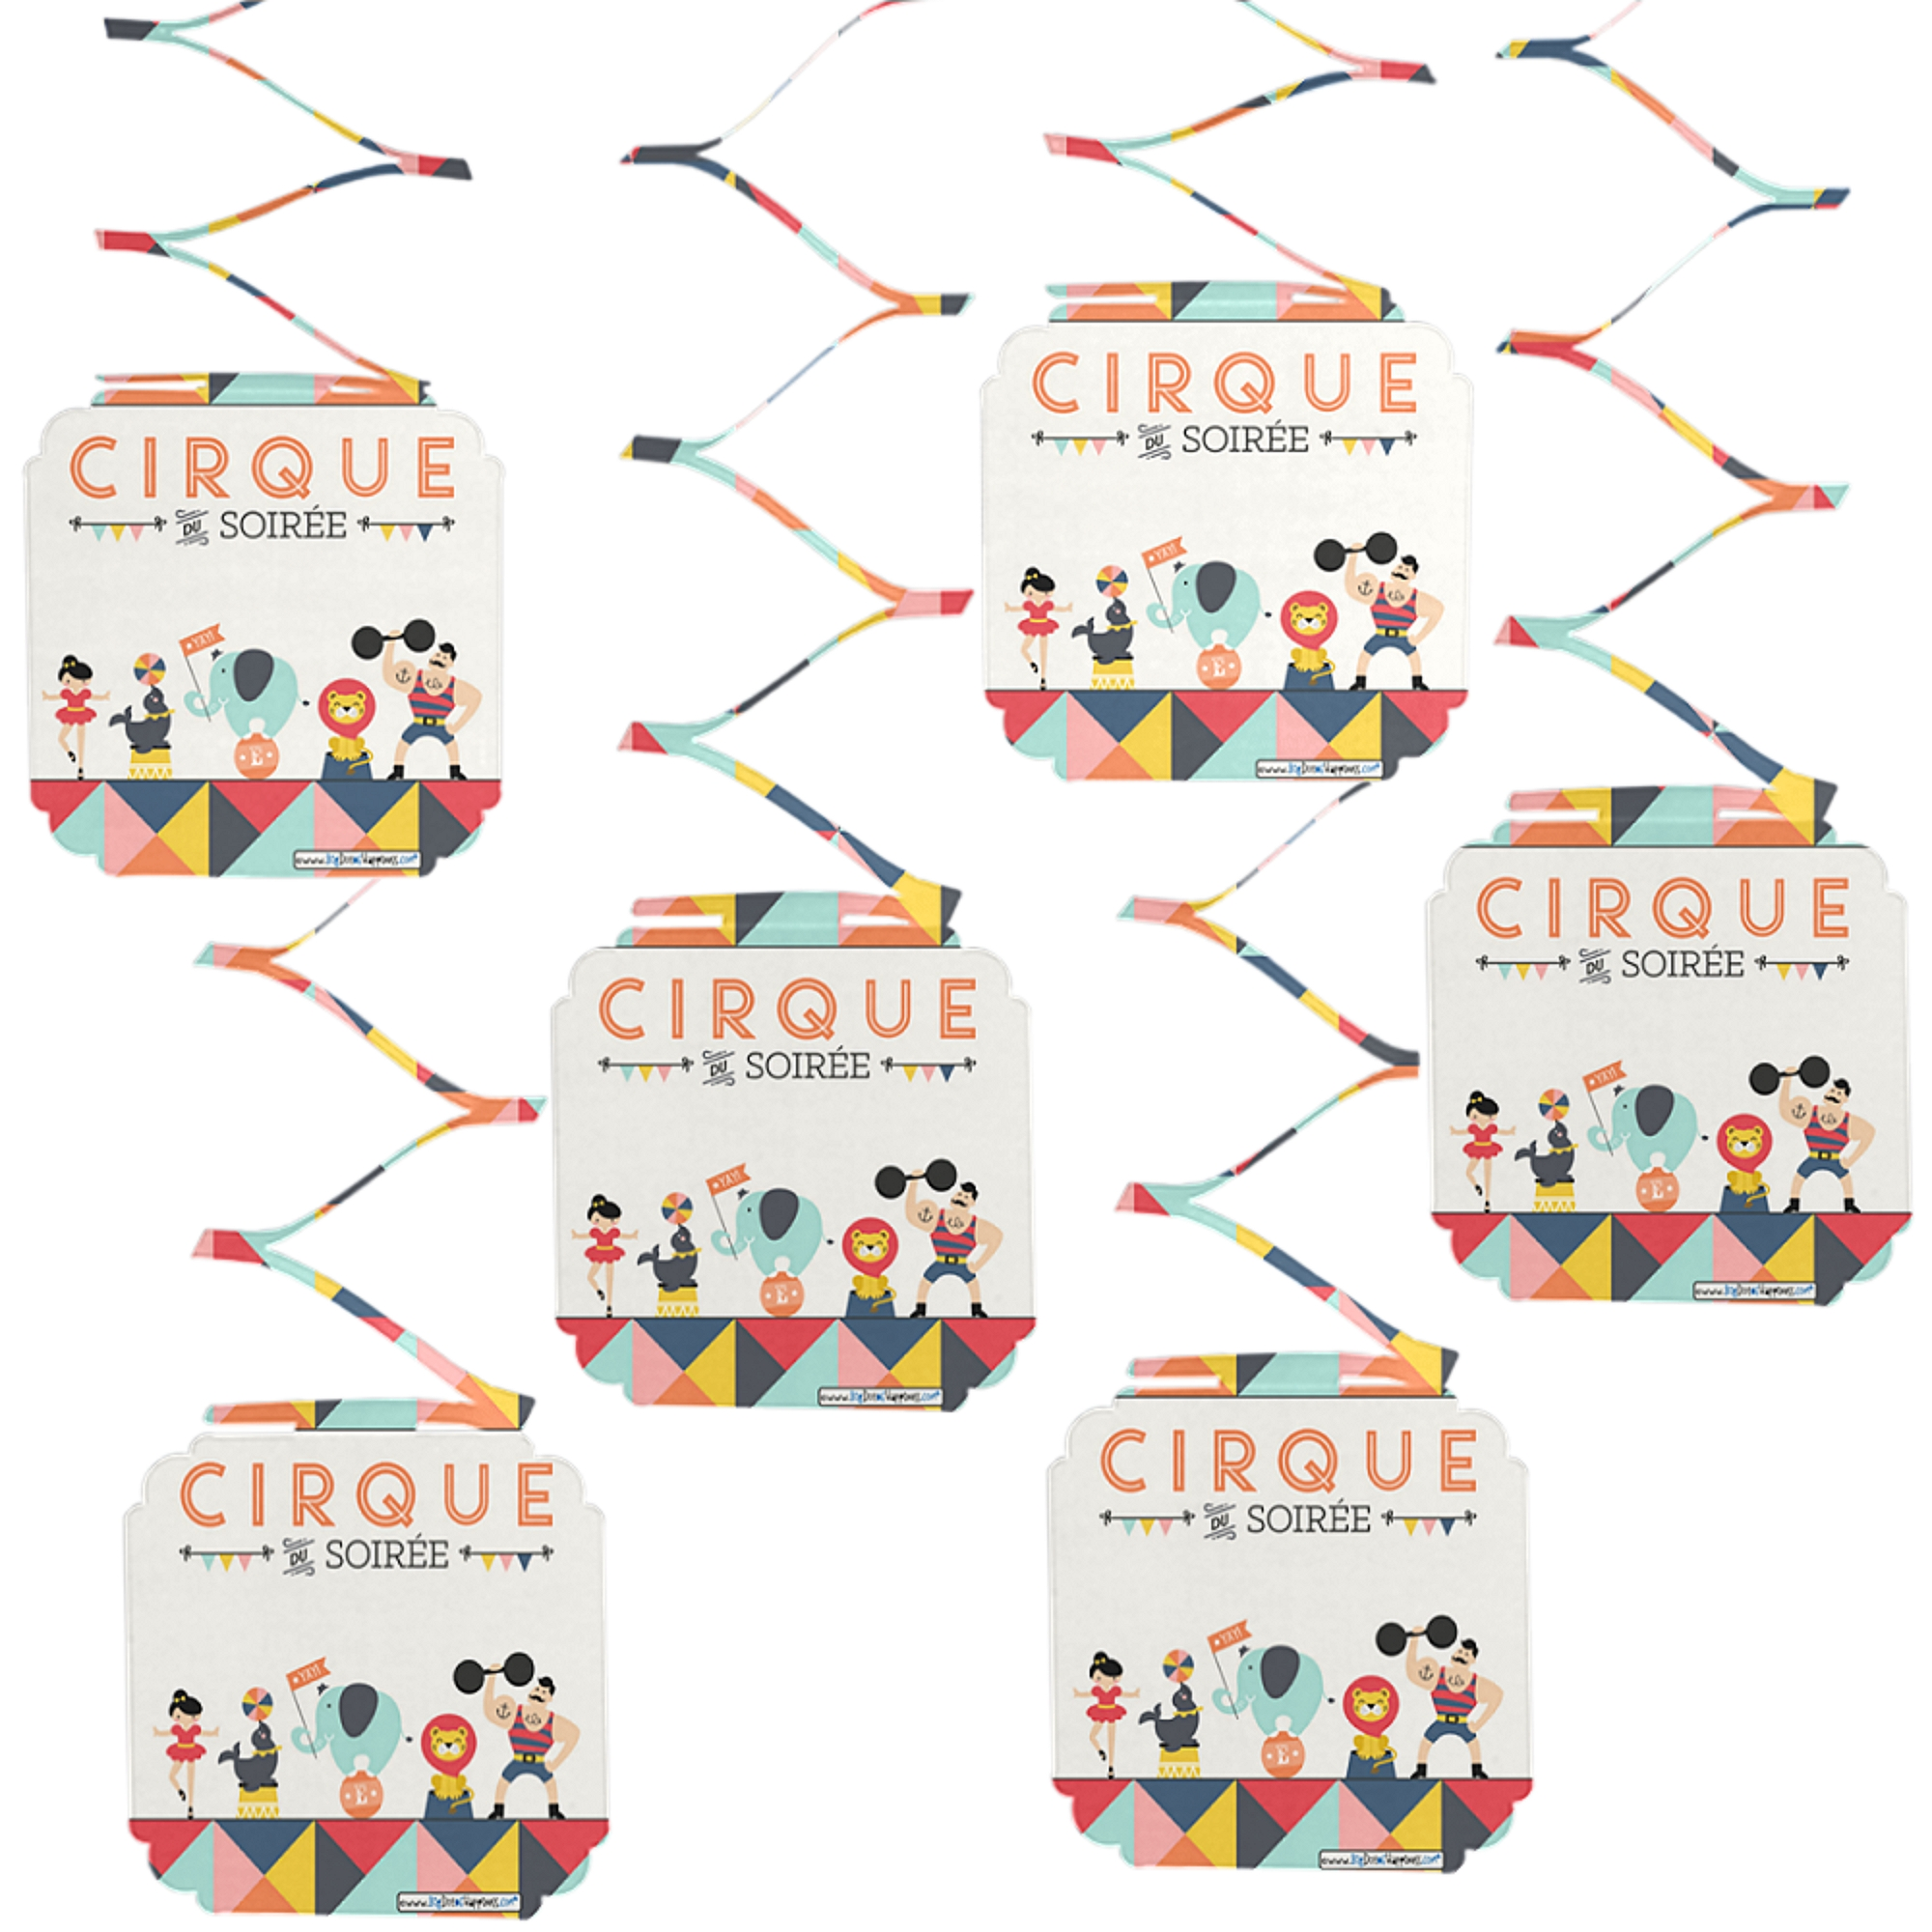 Carnival Circus - Cirque du Soiree - Baby Shower or Birthday Party Hanging Decorations - 6 Count